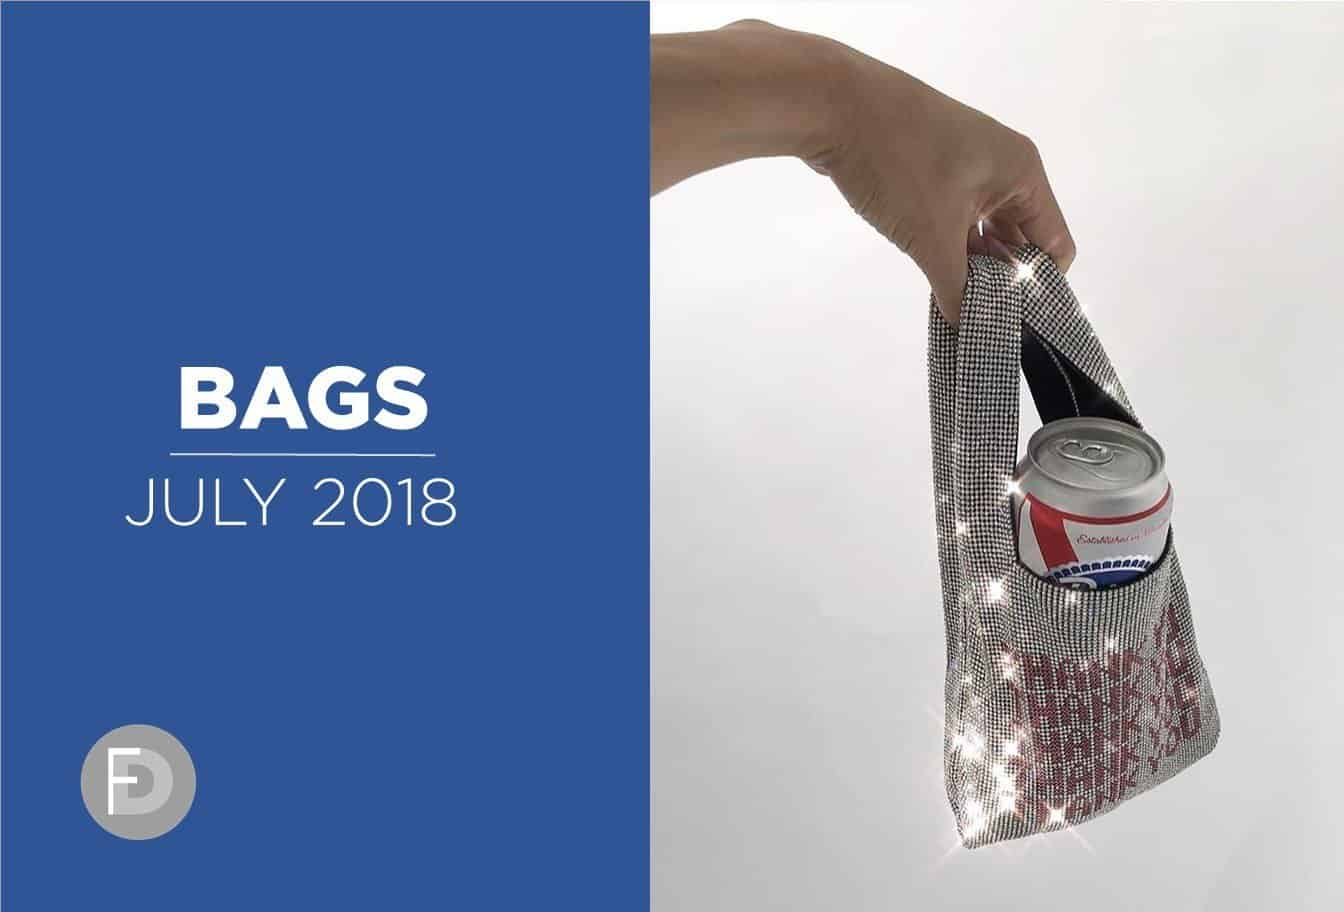 Bags July 2018